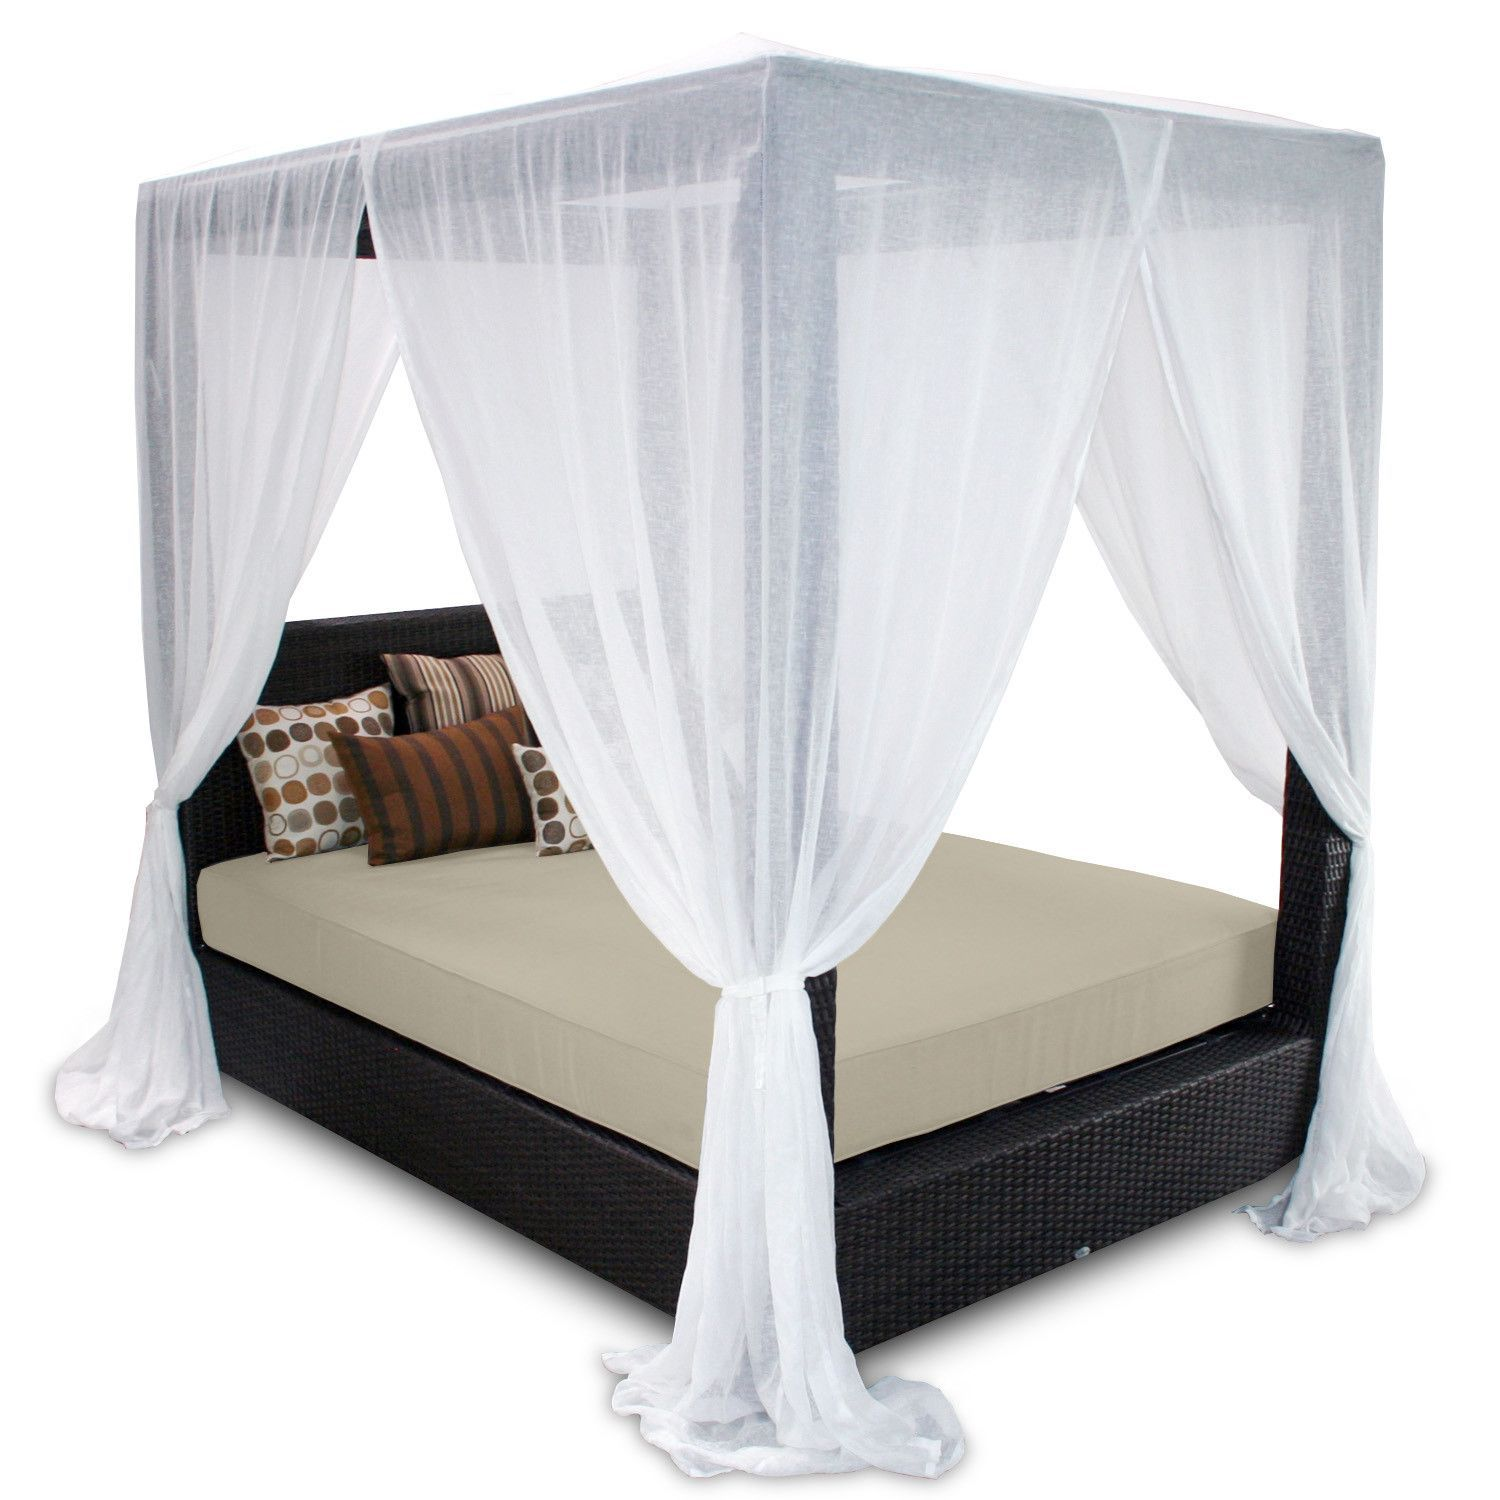 - Signature Queen Canopy Bed With Cushions Queen Canopy Bed, Patio